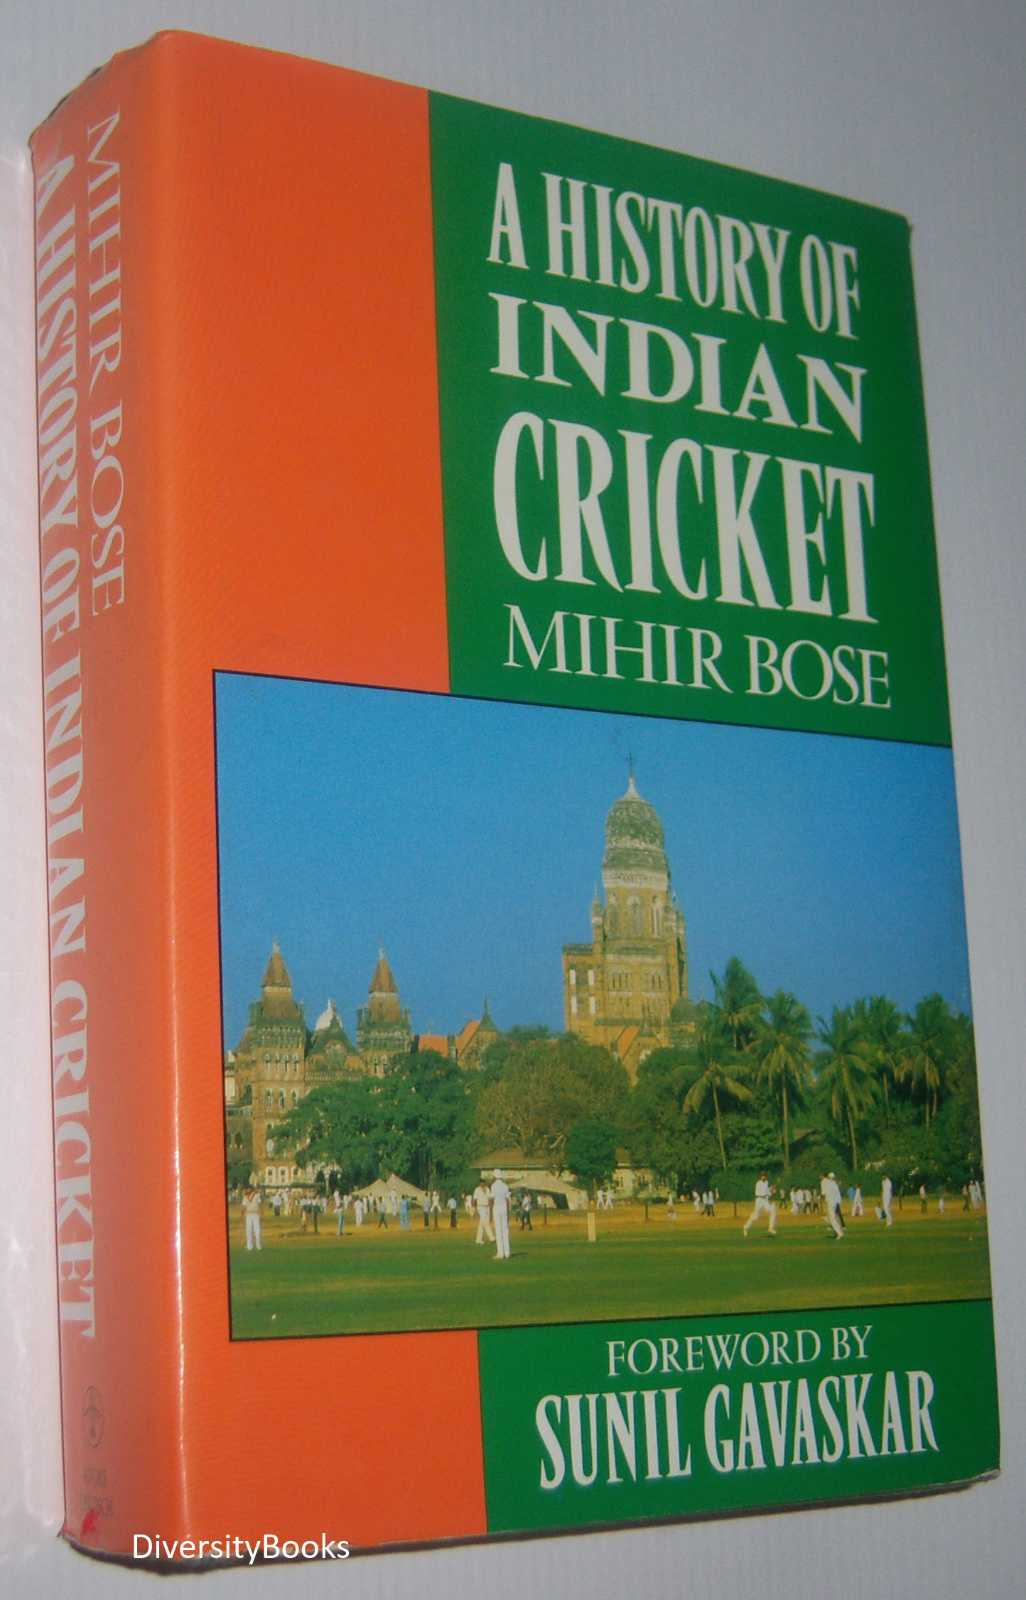 Image for A HISTORY OF INDIAN CRICKET